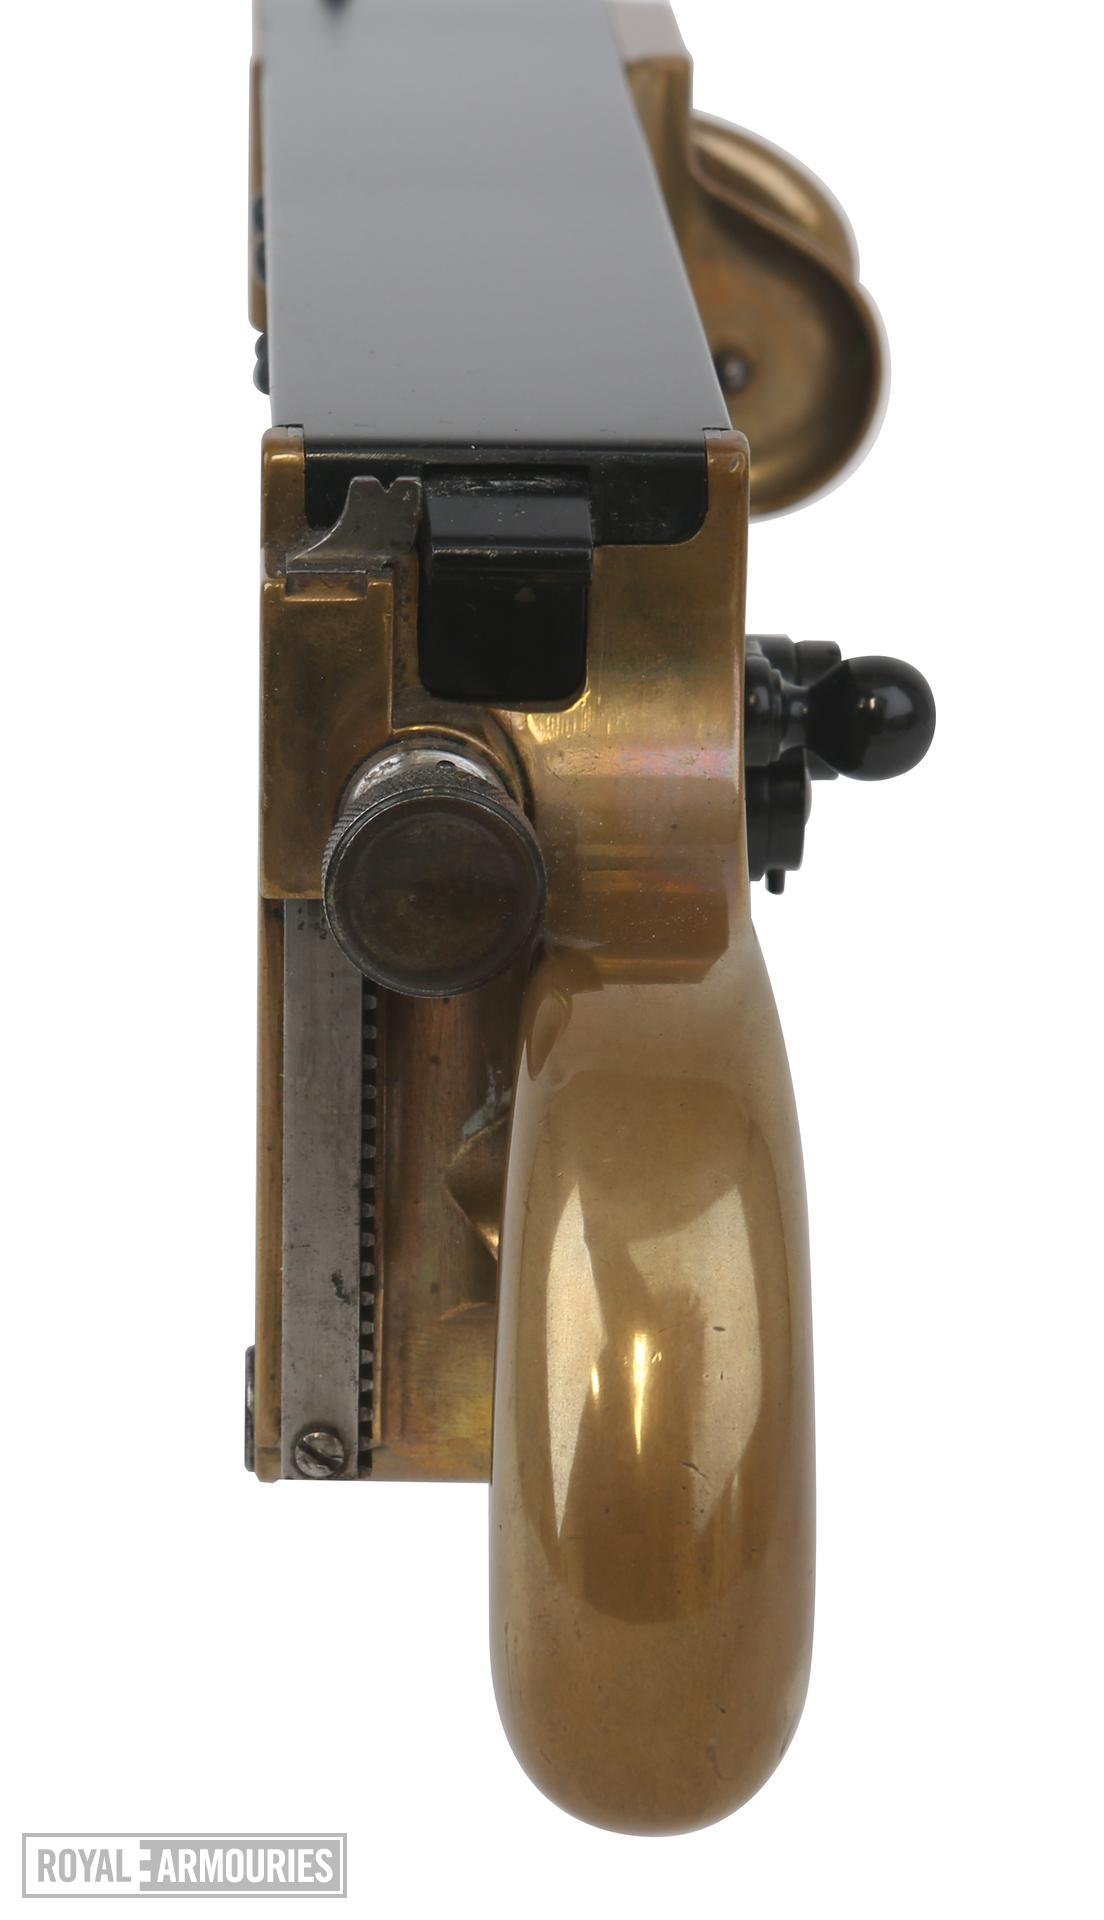 Miniature Maxim gun. Hiram Maxim was the first to engineer a gun that could fire continuously as long as its trigger was pulled. This reduced-scale gun was used to demonstrate the recoil operated mechanism. Because it fires the Mauser pistol cartridge, it is also technically the world's first submachine gun. PR.7163